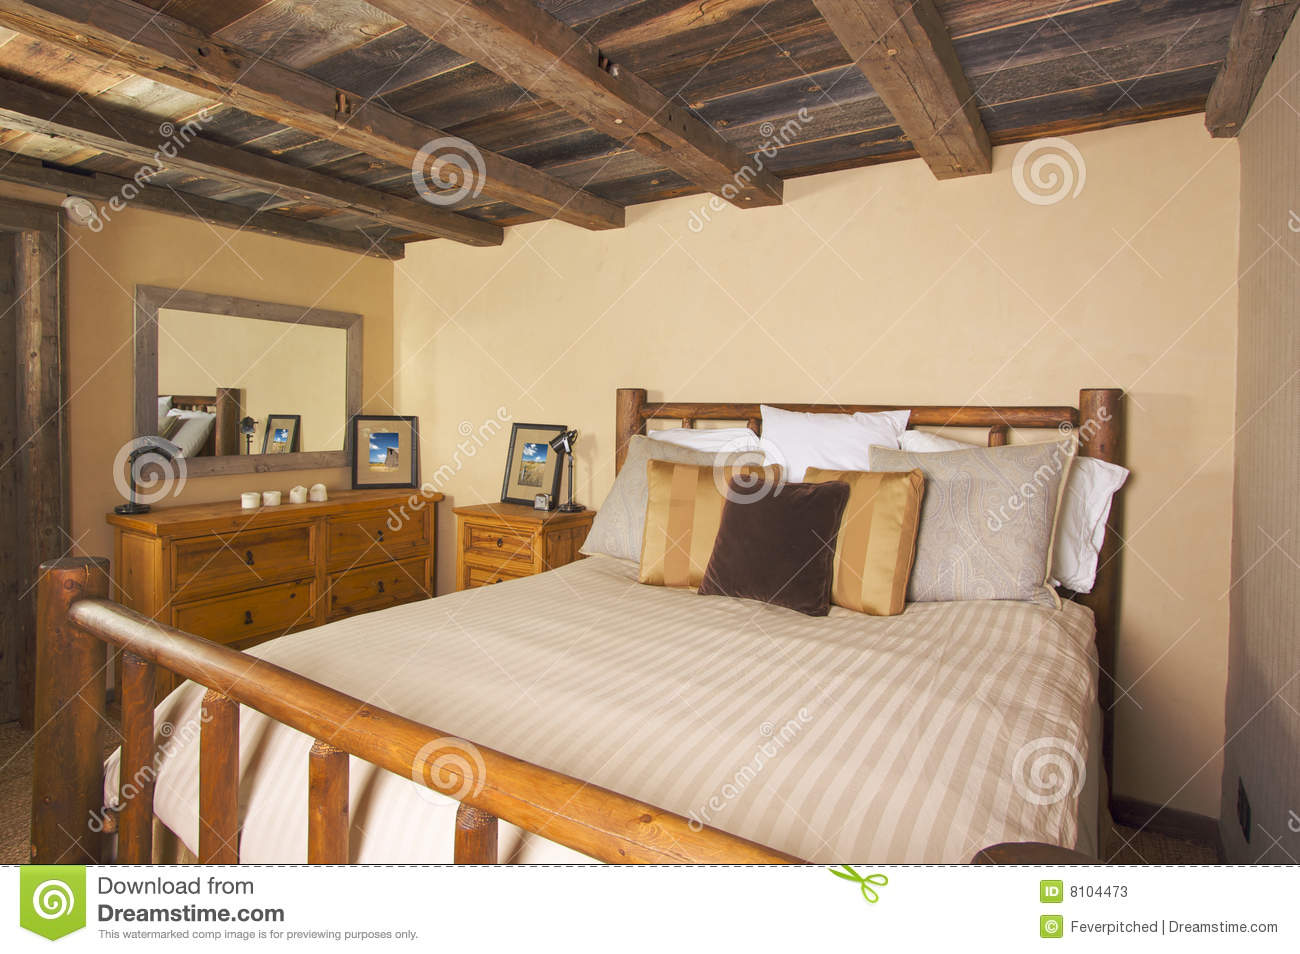 Luxurious rustic log cabin bedroom stock image image for 2 bedroom log cabin kits prices